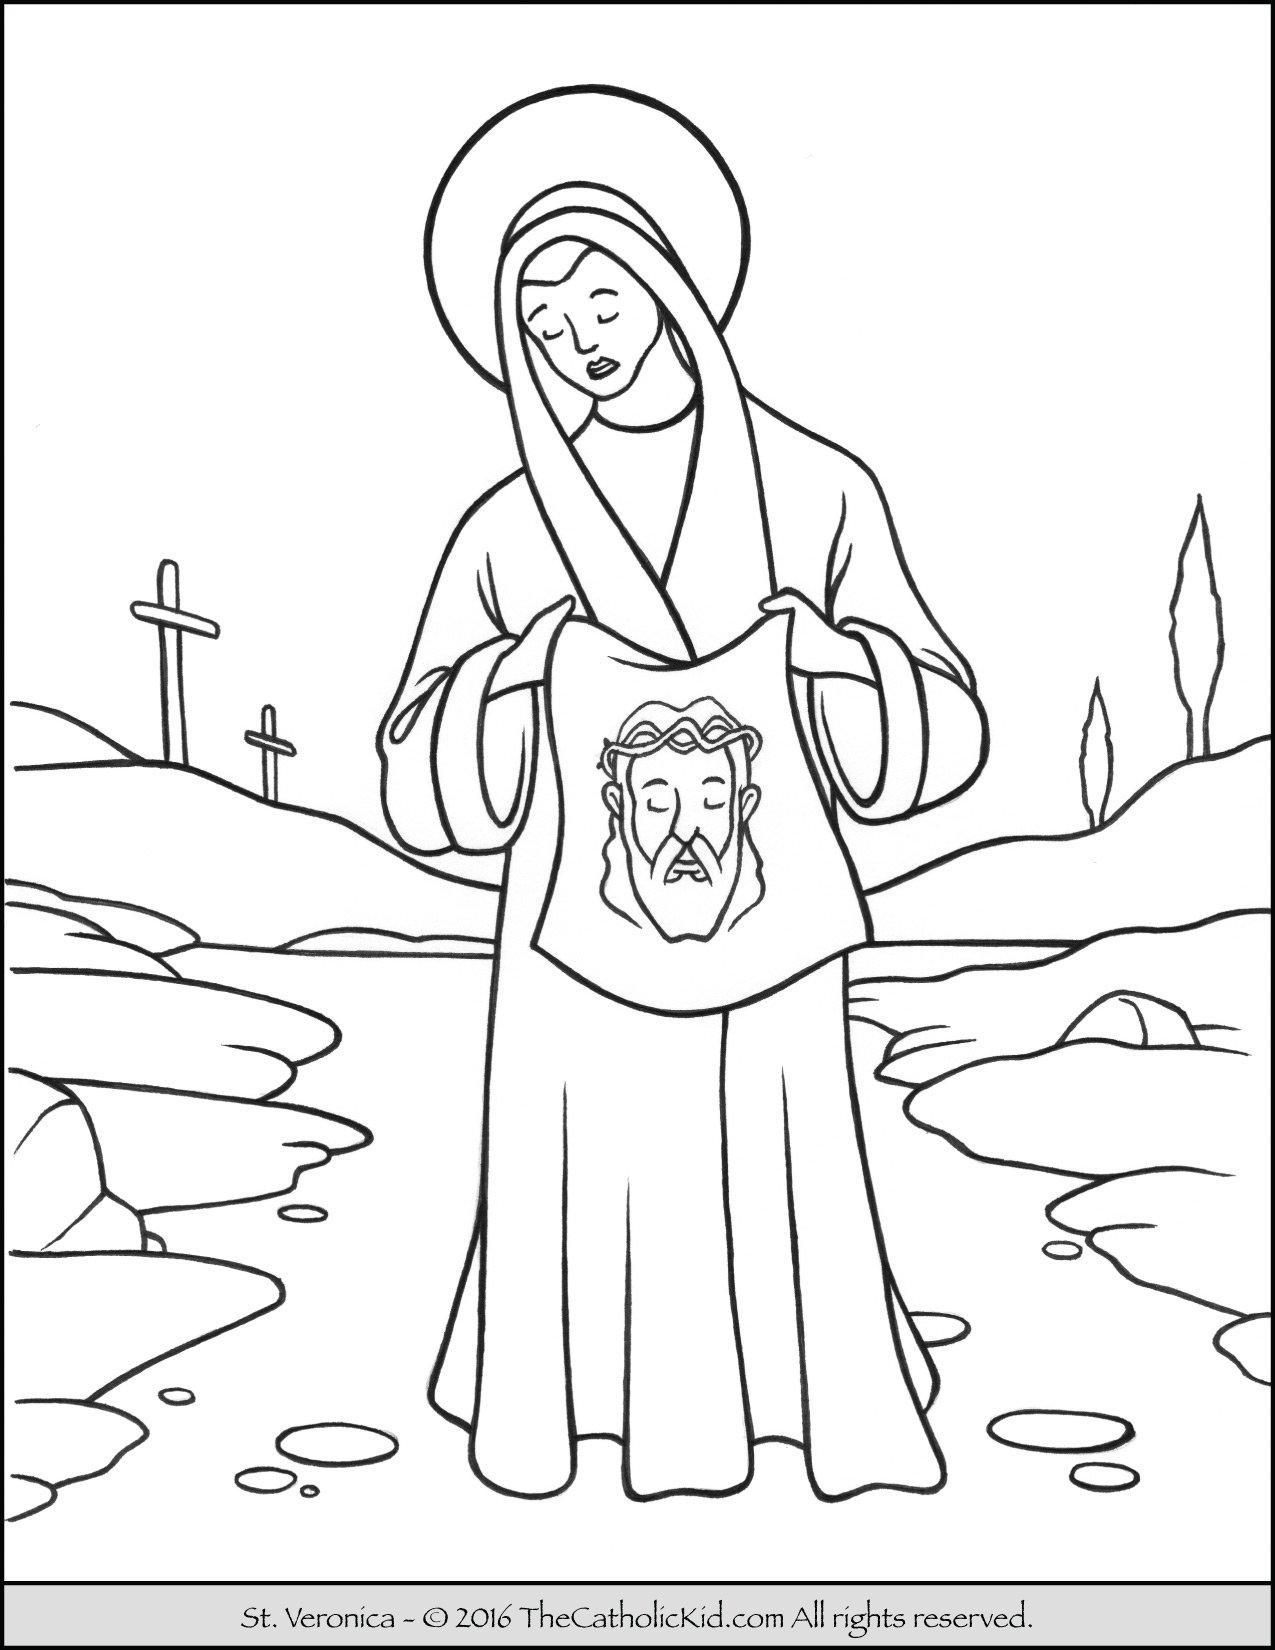 Saint Veronica Coloring Page - The Catholic Kid